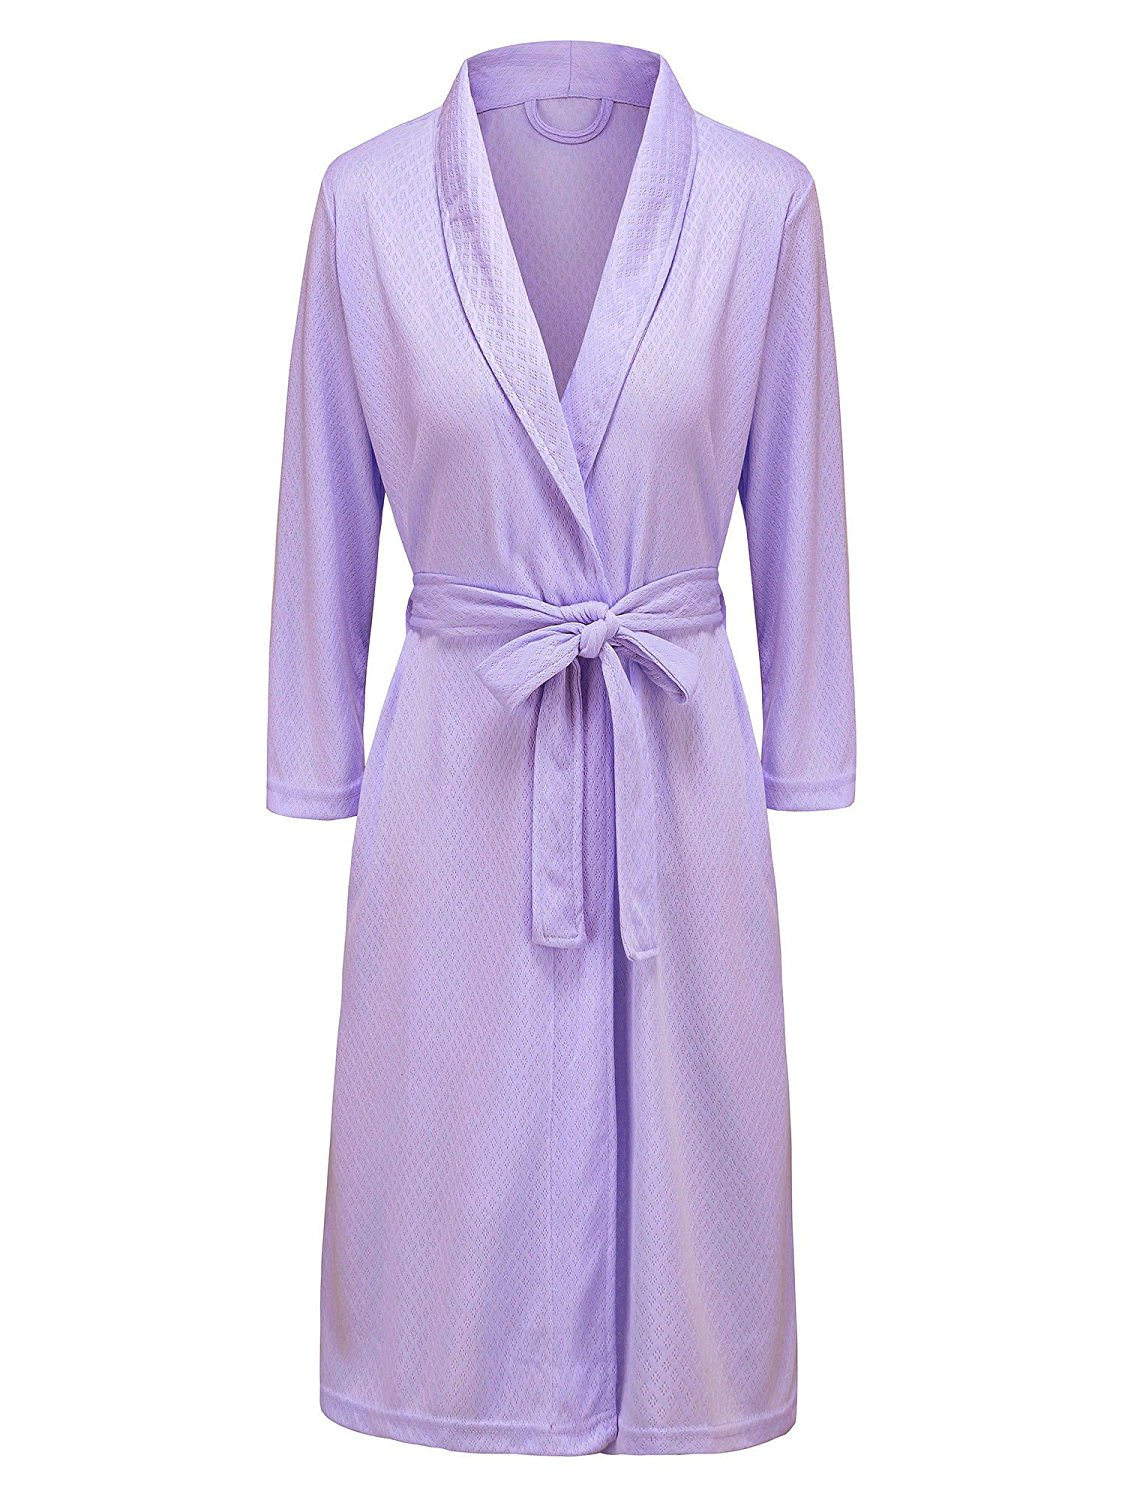 Champion Mens Dressing Gown Checkered Bath Robe Poly Cotton